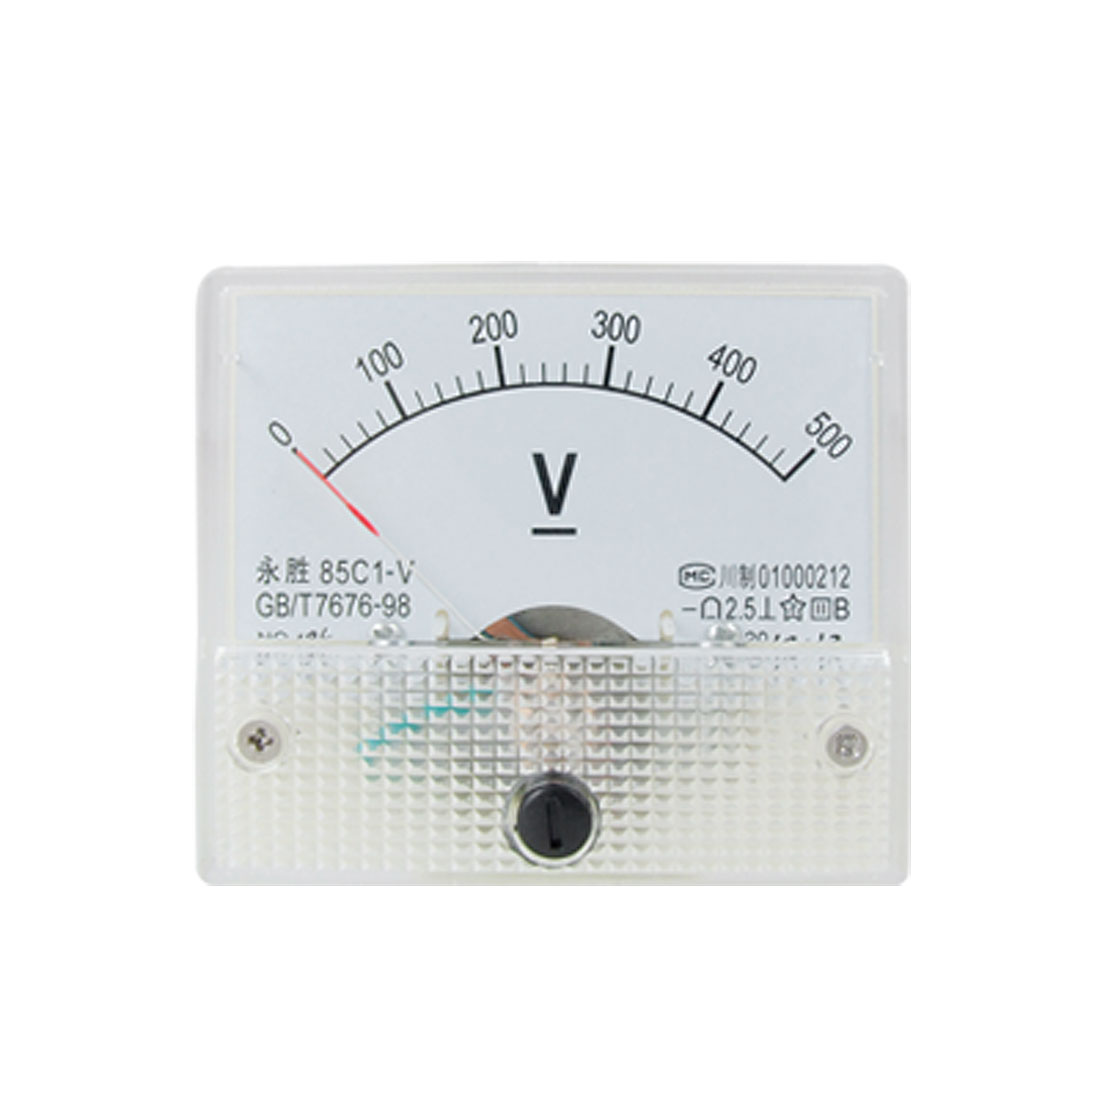 85C1-V DC 0-500V Analogue Needle Panel Meter Voltmeter